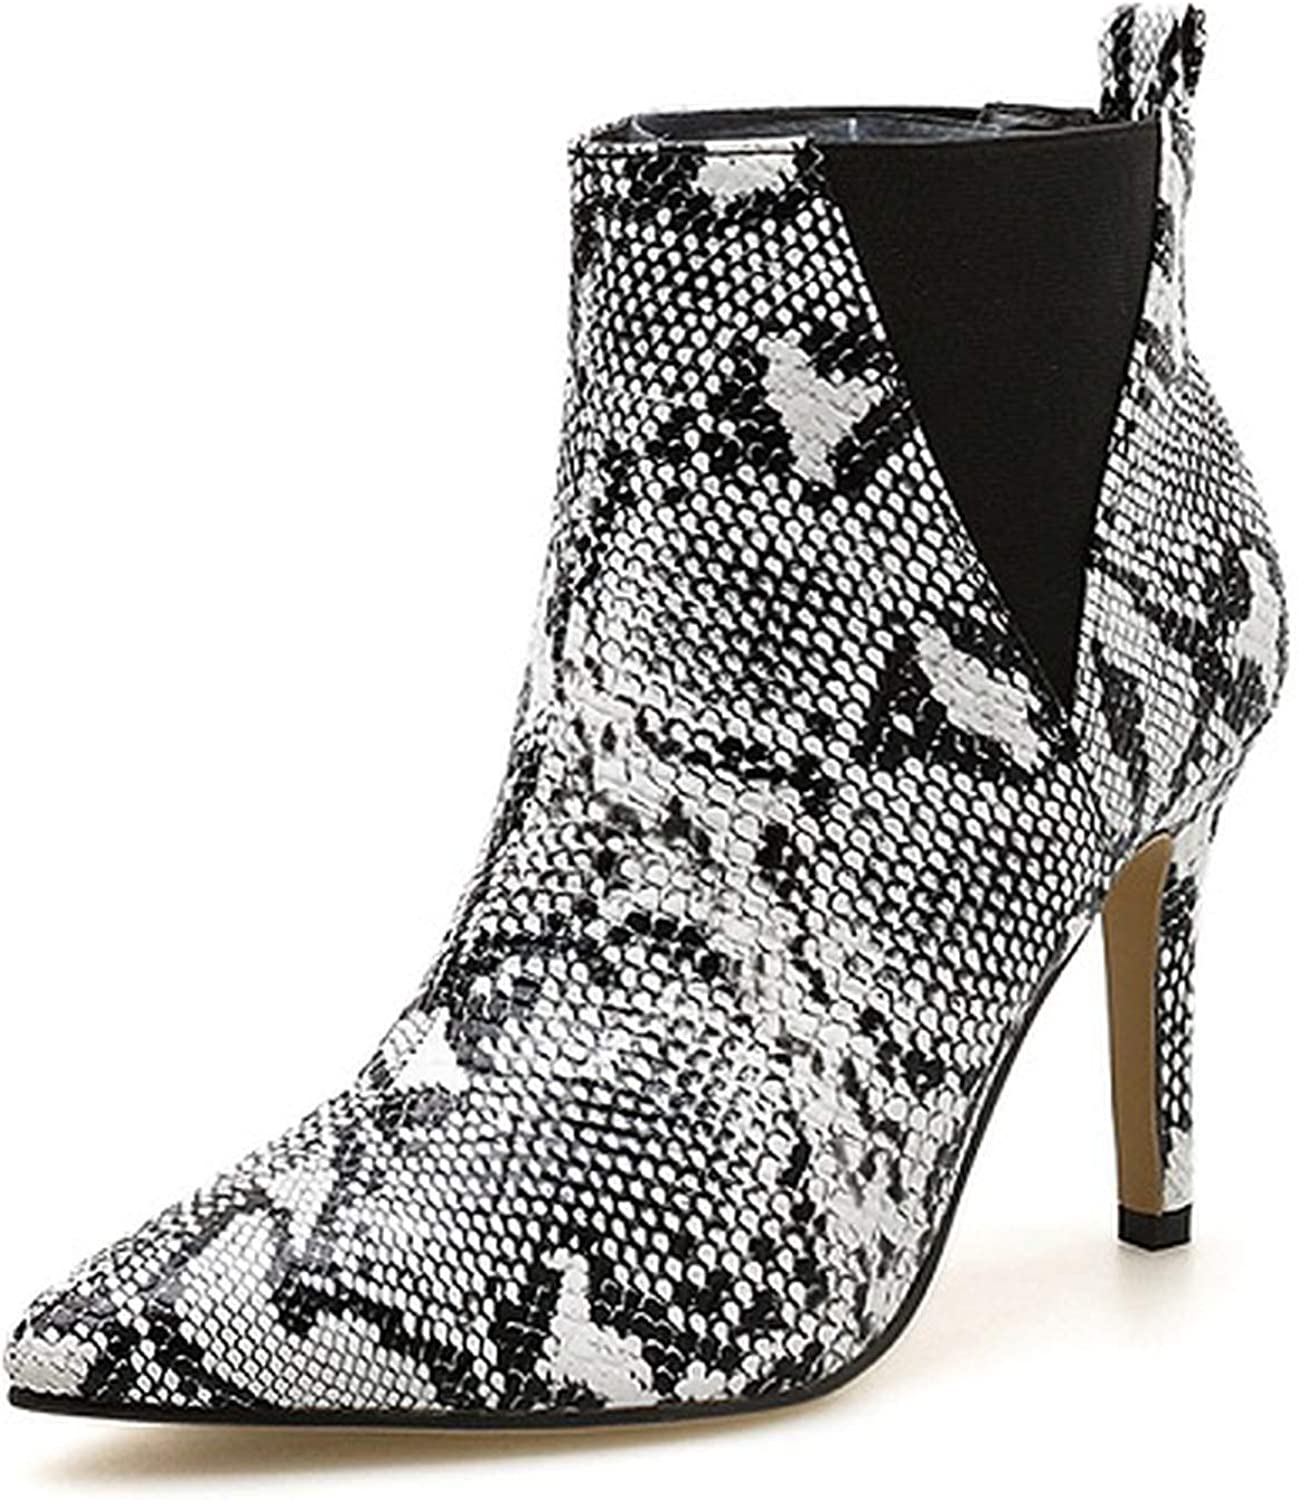 IOJHOIJOIJOIJMO 2019 Women Slip-On Boots Snake Print Ankle Boots ForWomen Thin Heels Fashion Pointed Toe